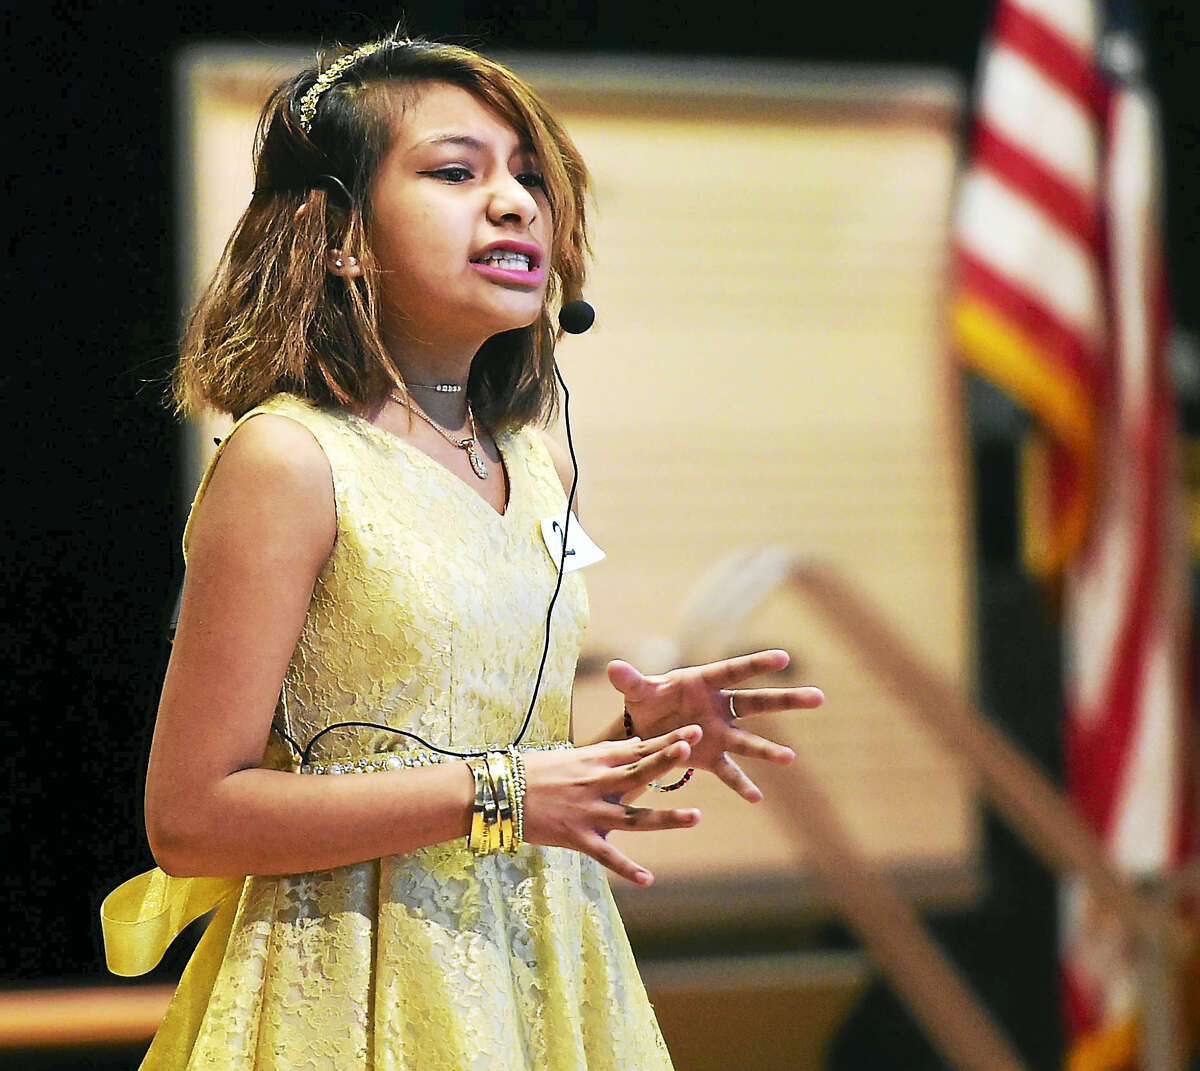 Hill Central School sixth-grader Kaitlyn Coronaperforms during the Voices of Hill Central Poetry Slam Wednesday in New Haven.